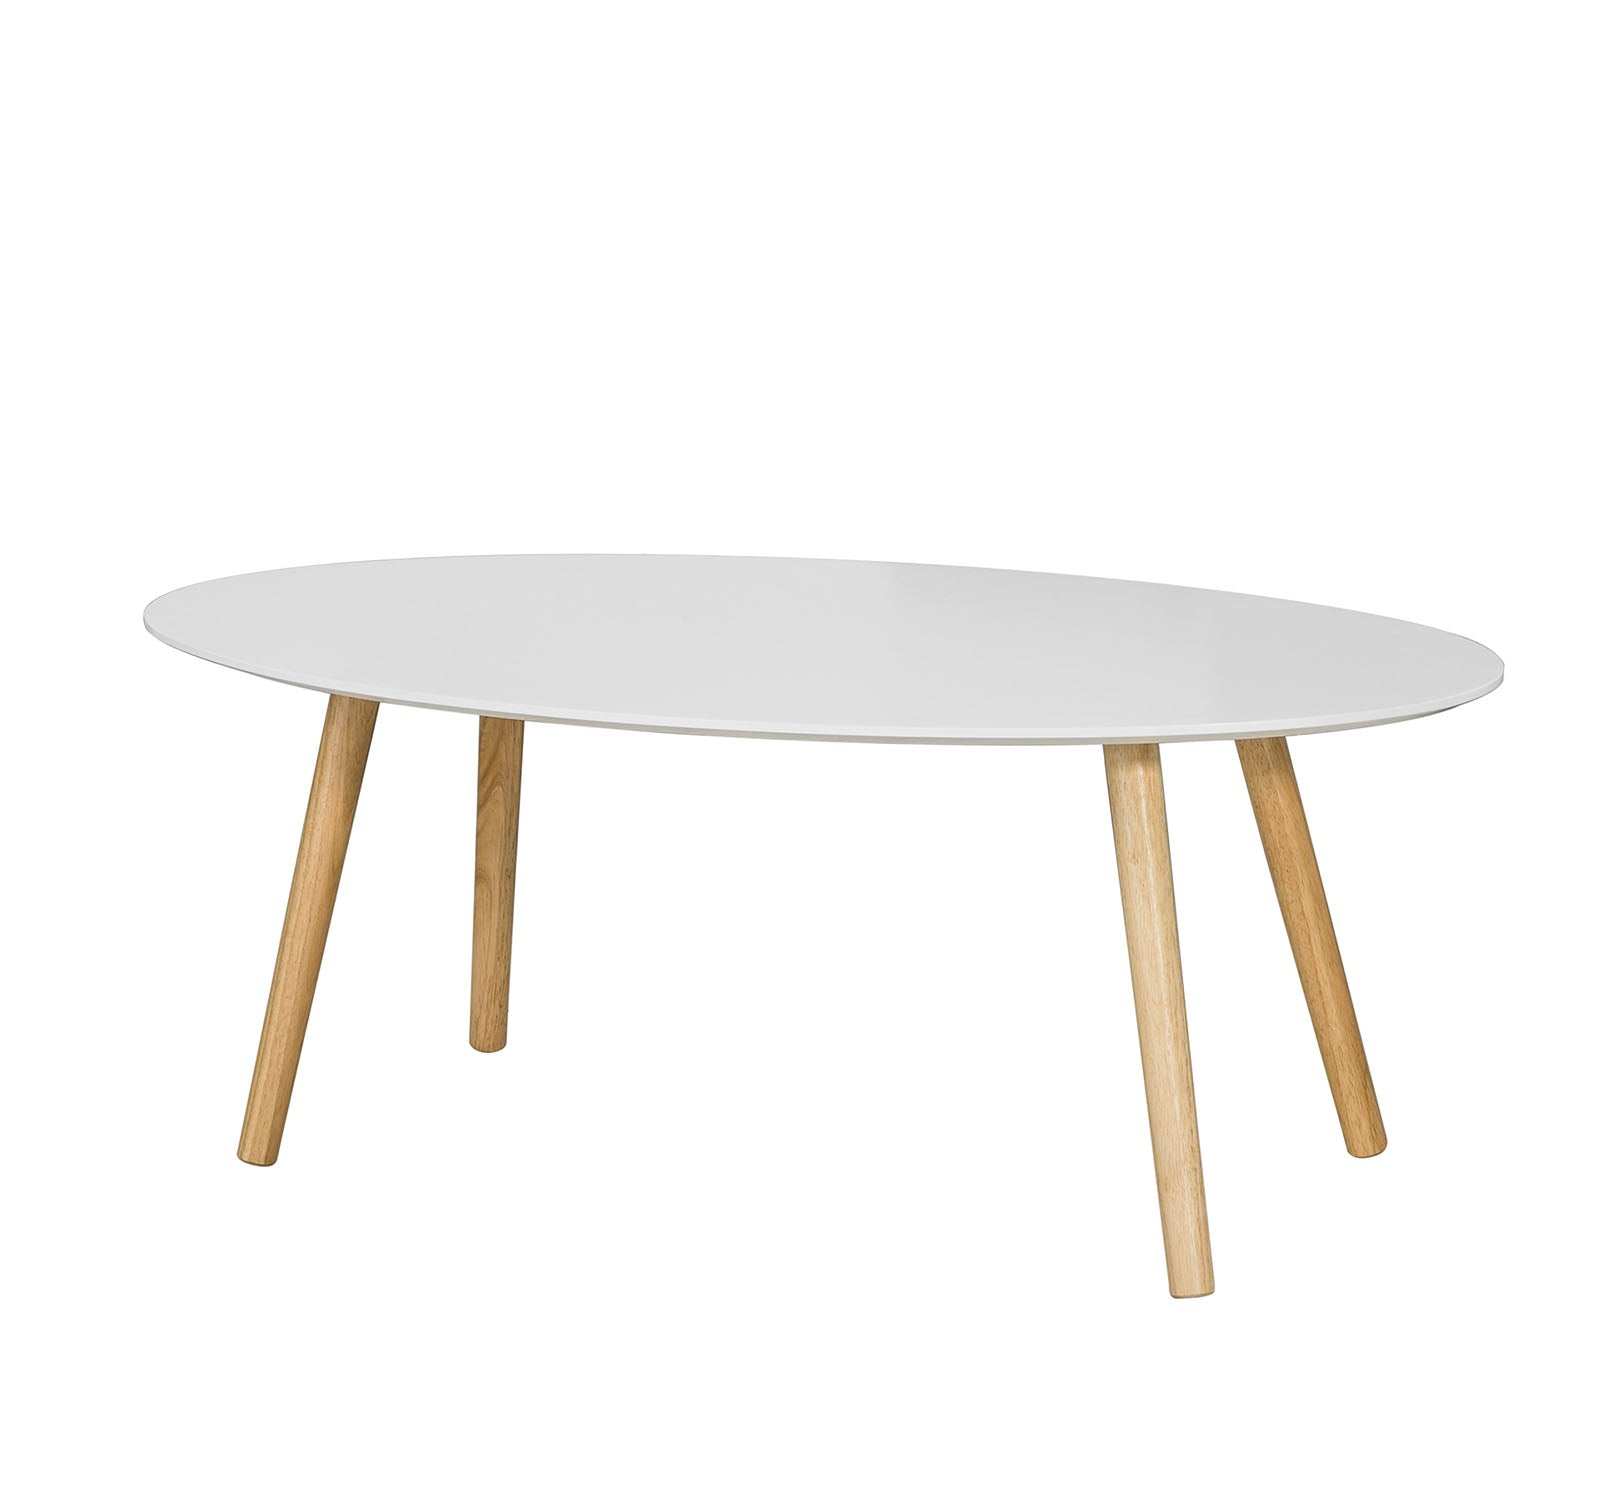 SoBuy Coffee Table Sofa Coffee Table Living Room Low Coffee Table White Oval Fbt61-W